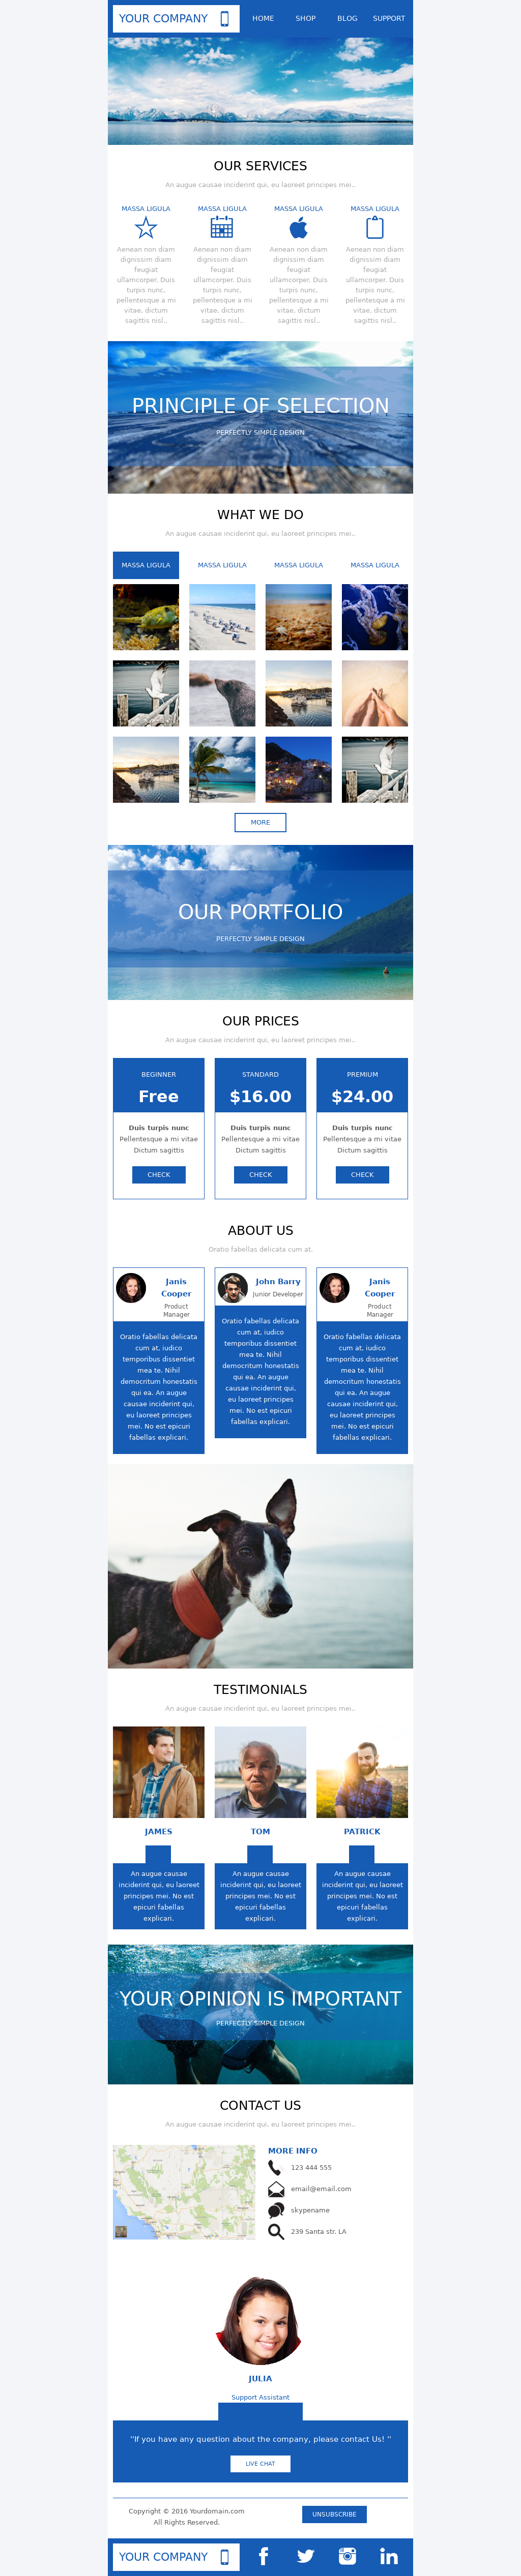 Free editable responsive B2B newsletter email template